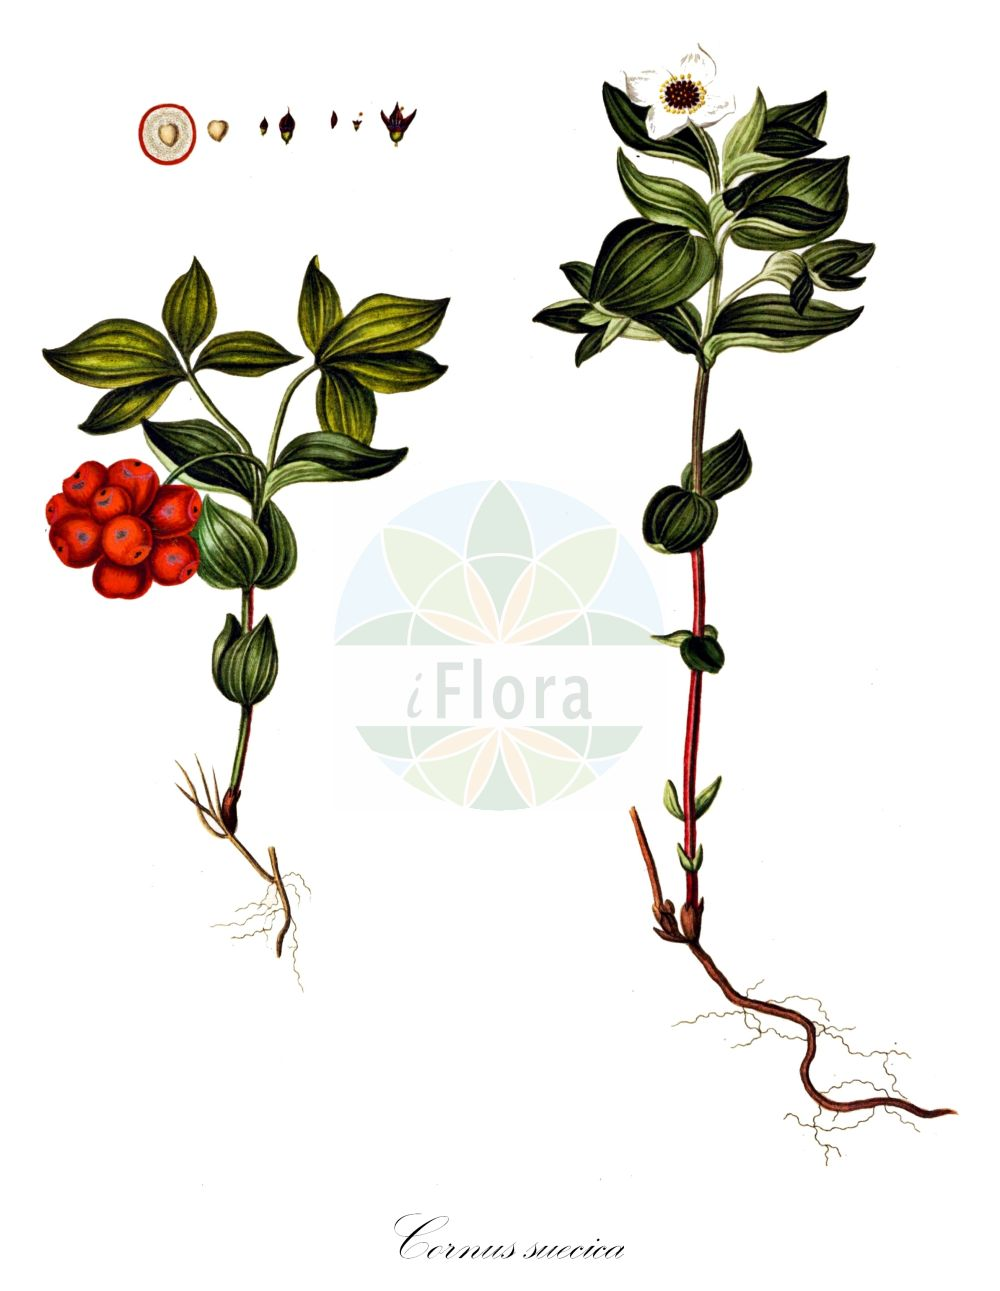 Historische Abbildung von Cornus suecica (Schwedischer Hartriegel - Dwarf Cornel). Das Bild zeigt Blatt, Bluete, Frucht und Same. ---- Historical Drawing of Cornus suecica (Schwedischer Hartriegel - Dwarf Cornel).The image is showing leaf, flower, fruit and seed.(Cornus suecica,Schwedischer Hartriegel,Dwarf Cornel,Arctocrania suecica,Chamaepericlymenum suecicum,Cornella suecica,Cornus biramis,Cornus borealis,Cornus herbacea,Cornus instolonea,Eukrania suecica,Ossea instolonea,Swida instolonea,Thelycrania instolonea,Lapland Cornel,Cornus,Hartriegel,Cornel,Cornaceae,Hartriegelgewaechse,Dogwood family,Blatt,Bluete,Frucht,Same,leaf,flower,fruit,seed,Oeder (1761-1883))